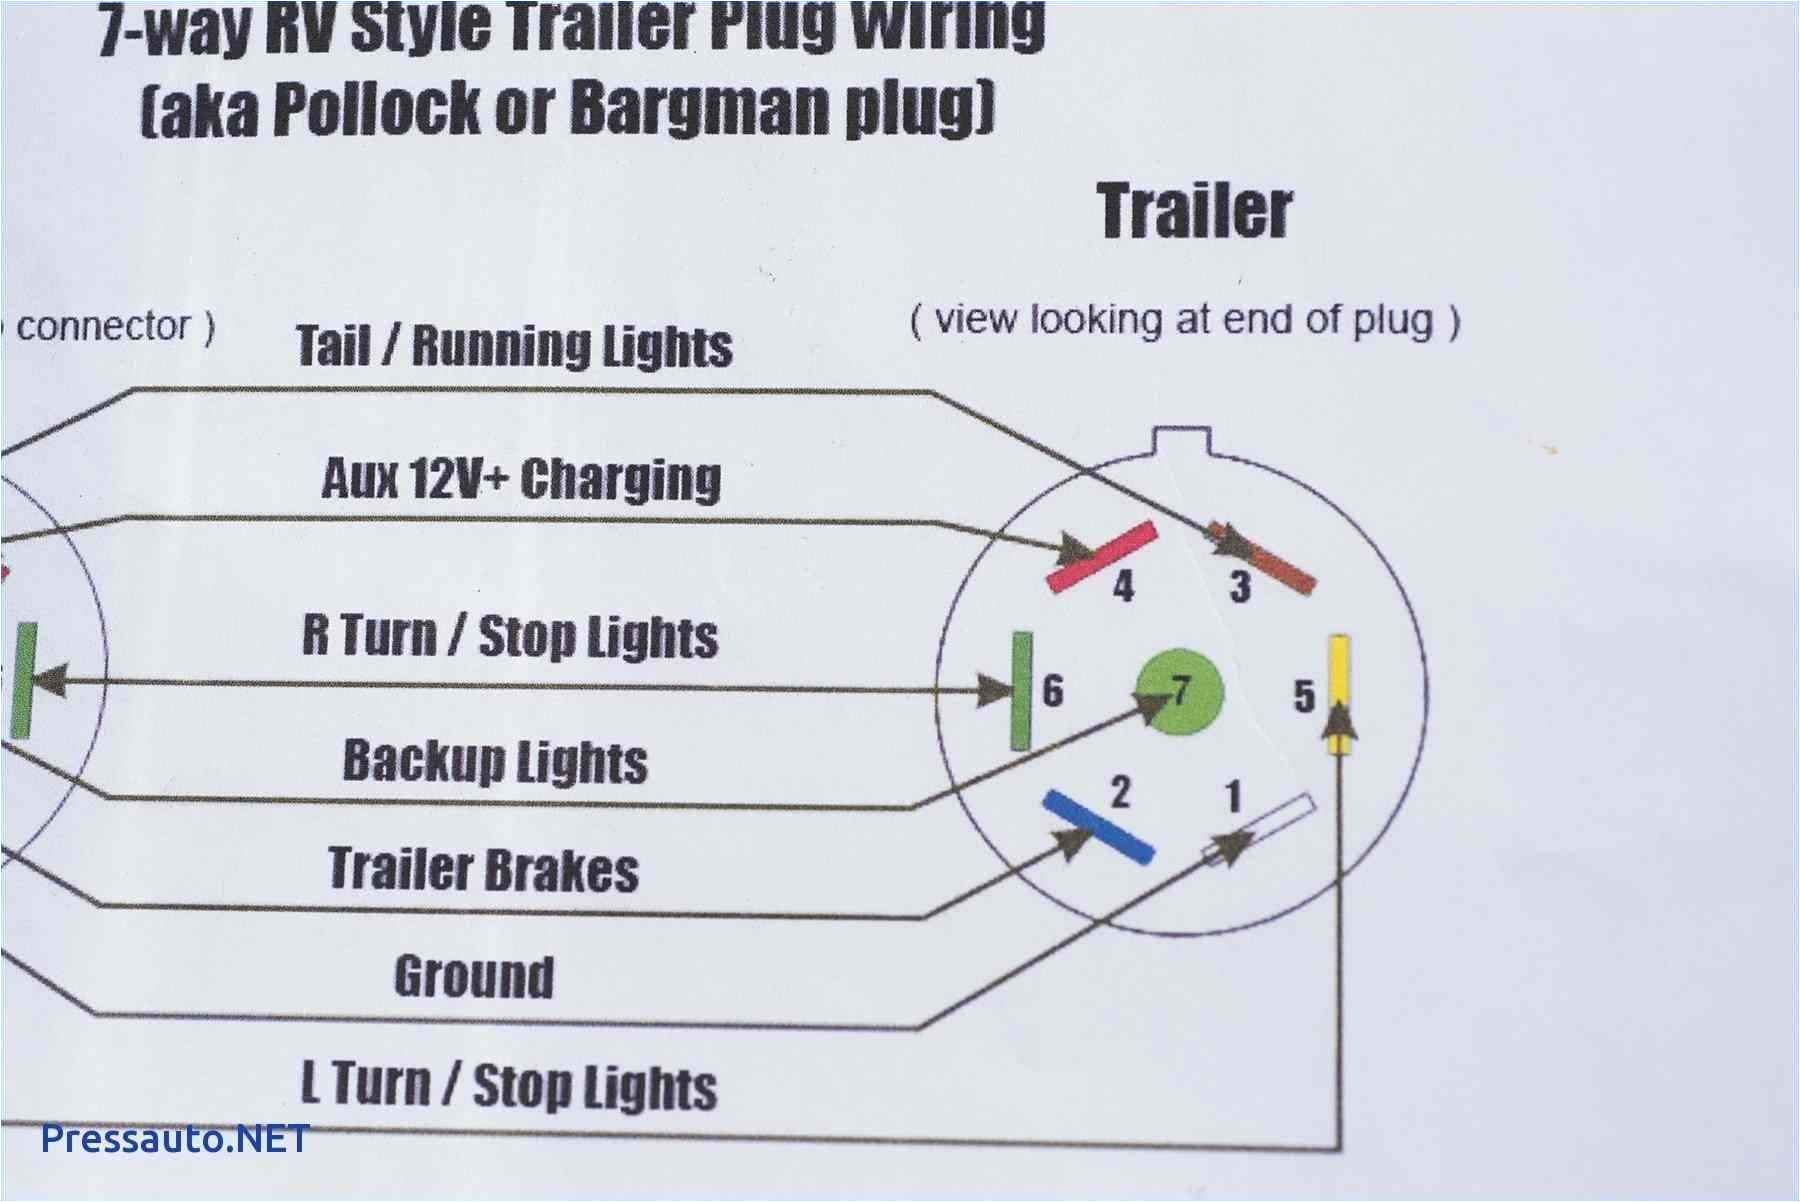 wilson stock trailer 7 way plug wiring diagram wiring diagram site wiring a cattle trailer